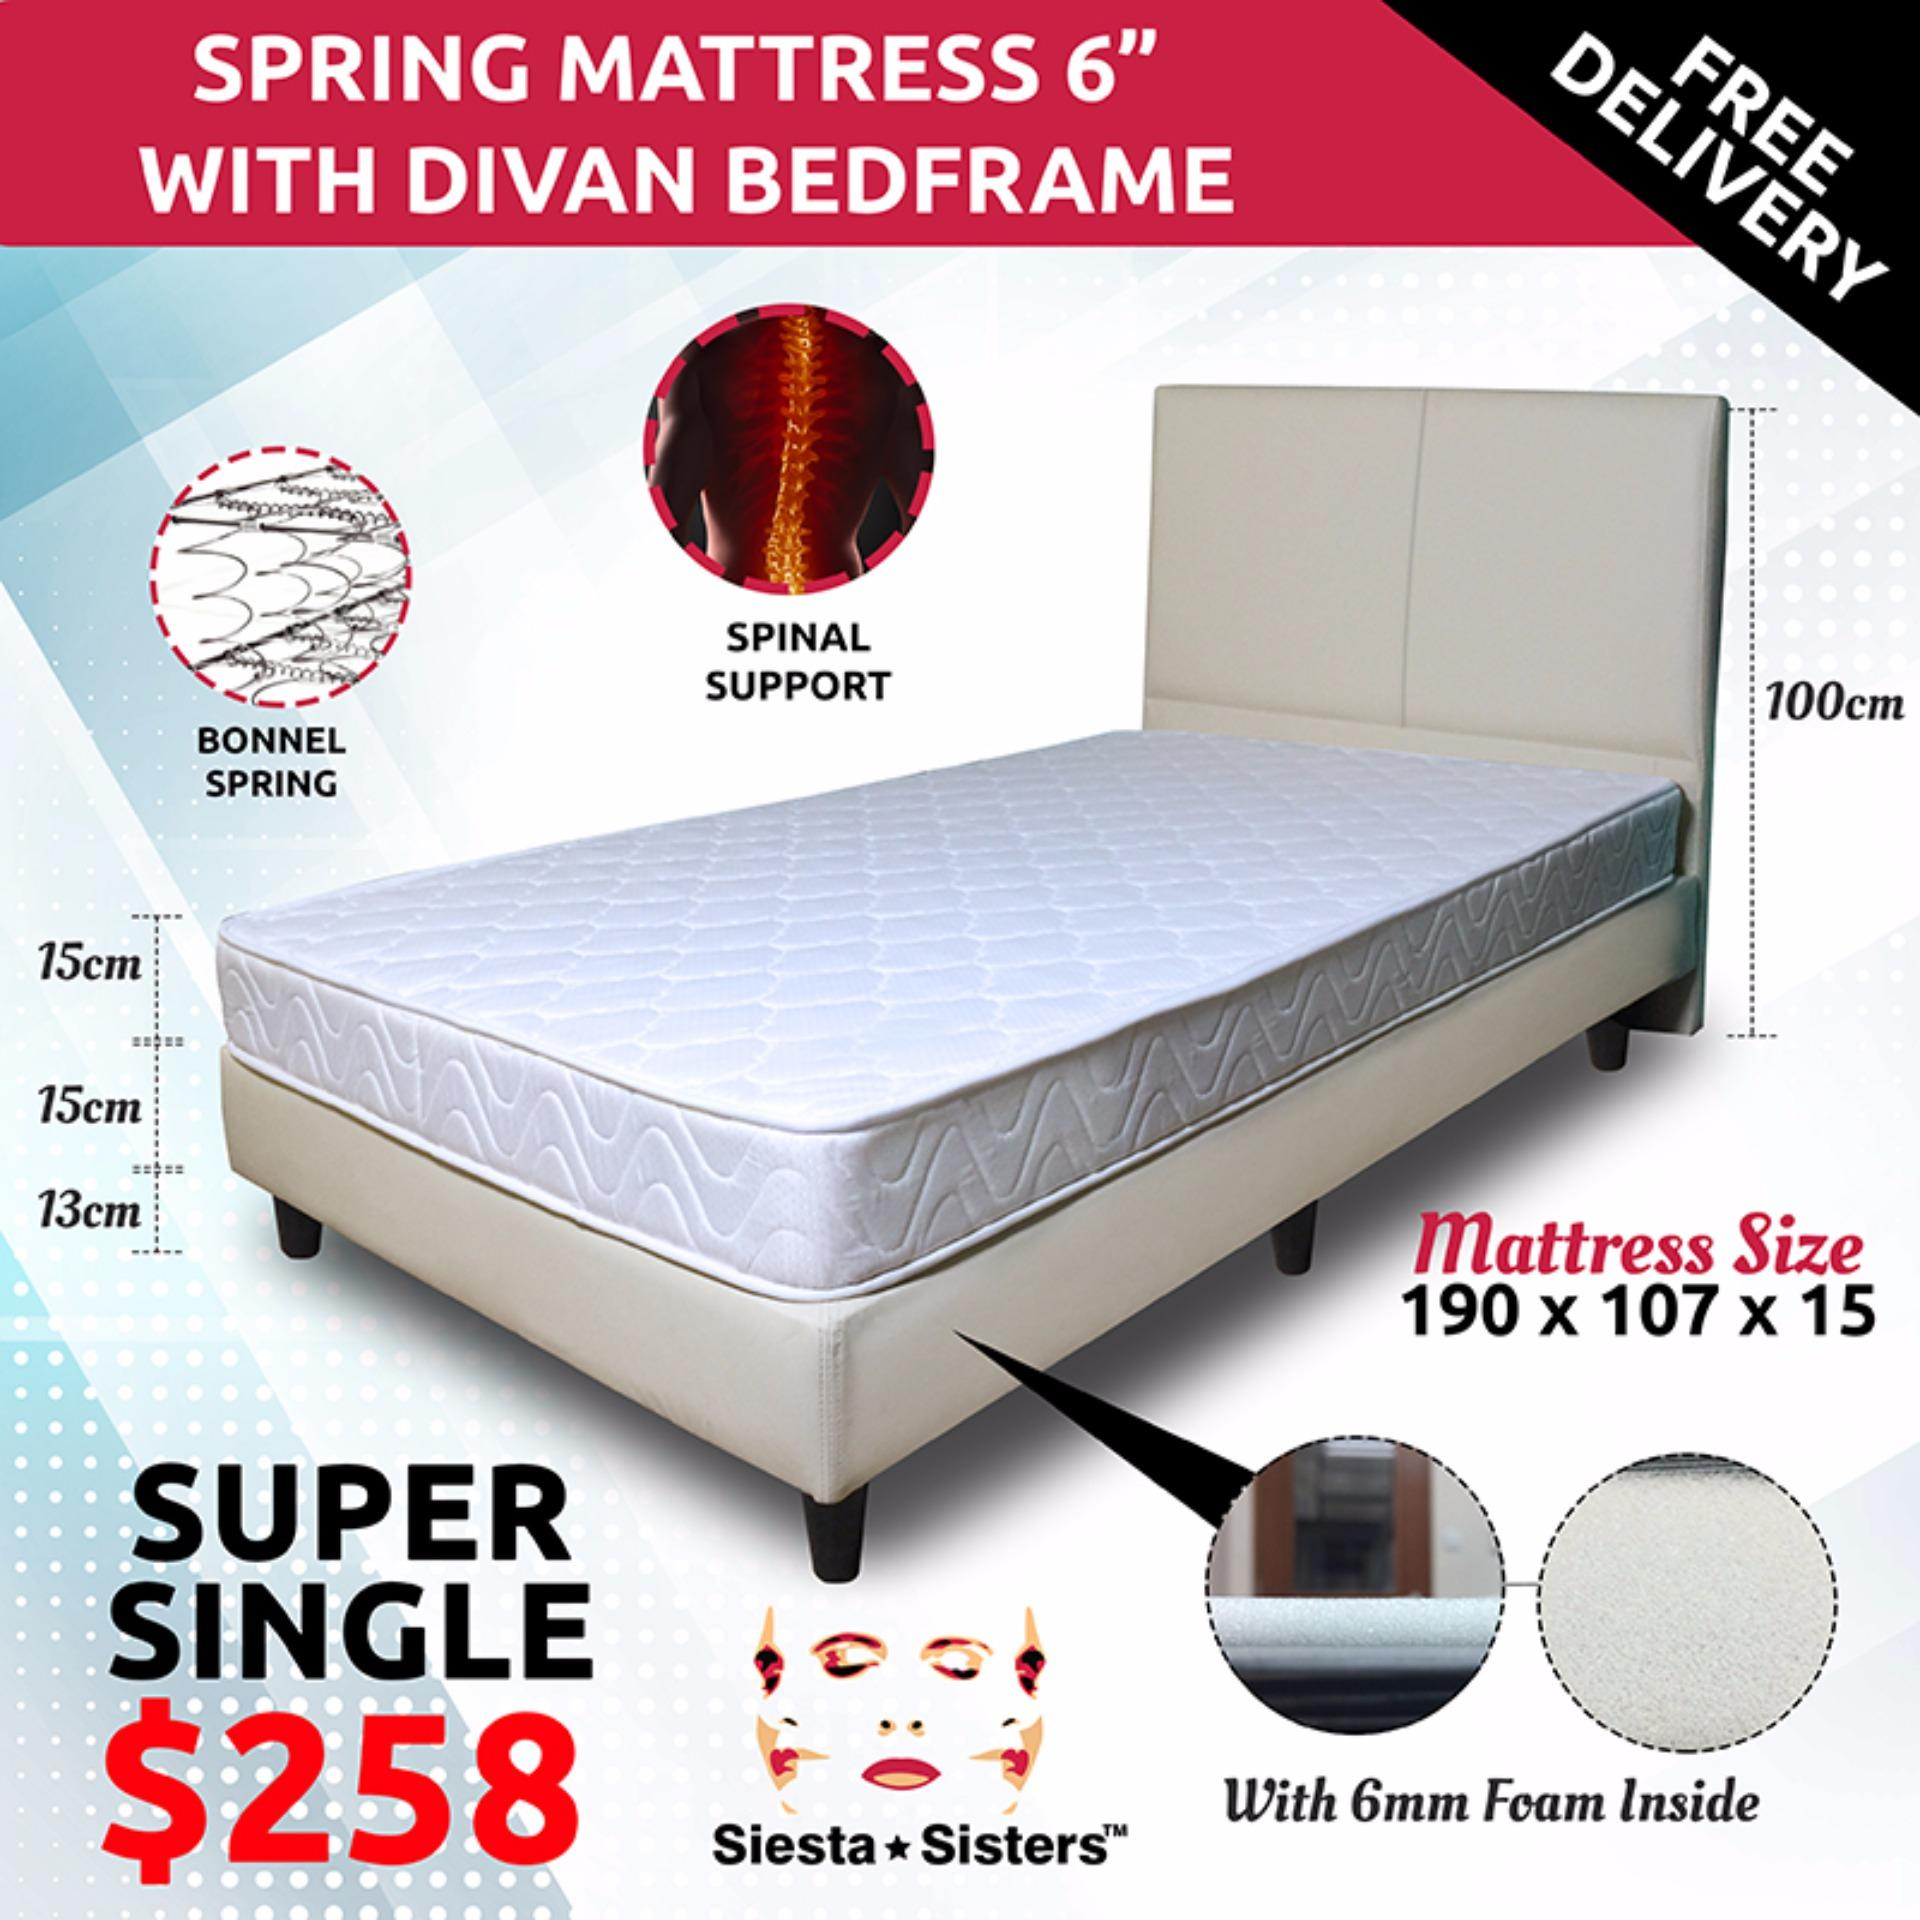 6 Inches Spring Mattress with Divan bed frame and headboard - Super Single  Size